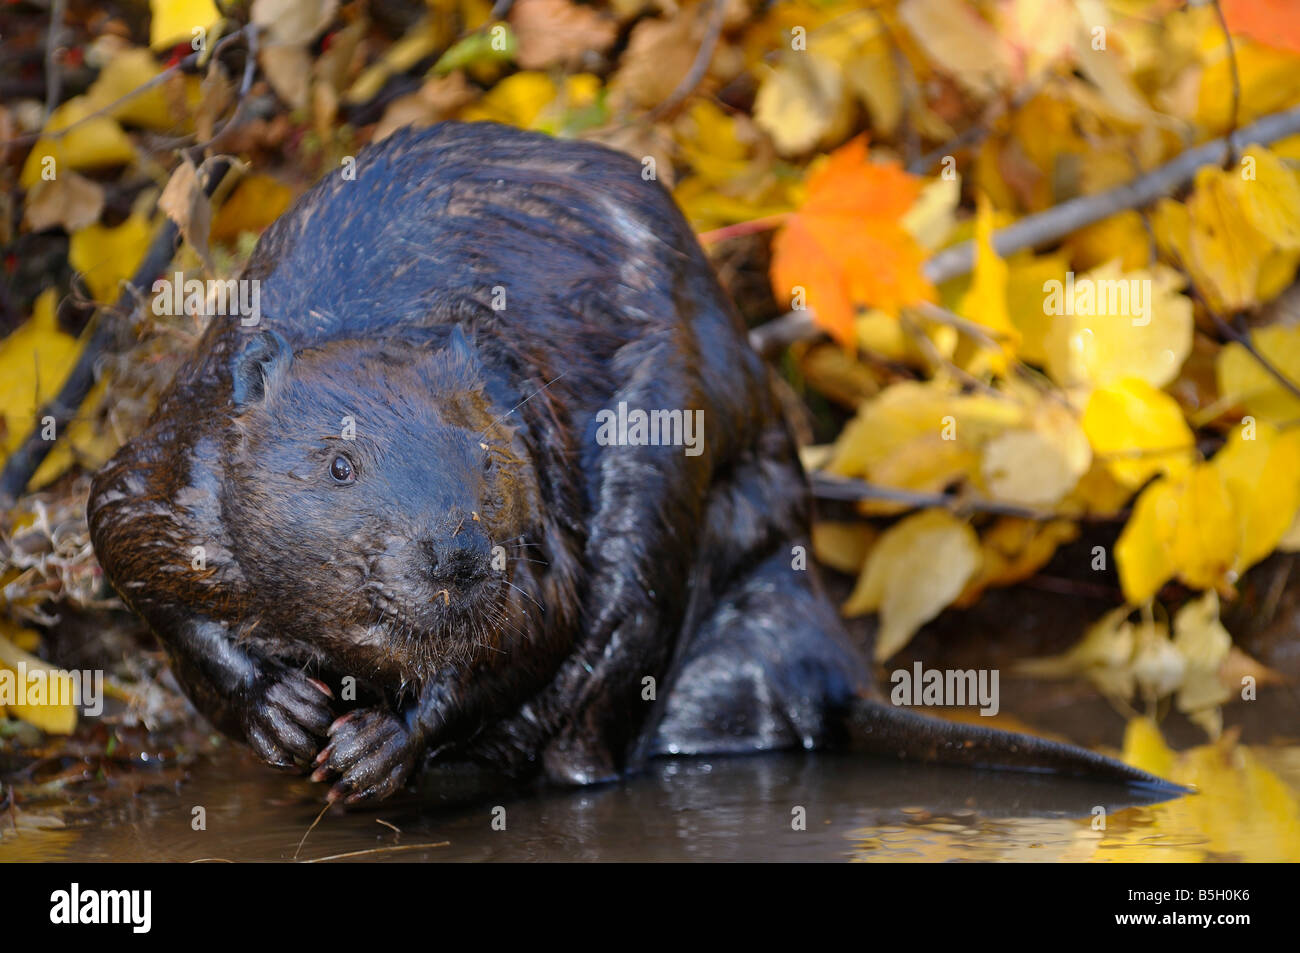 Wet Canadian Beaver digging at the edge of a stream with Fall color birch and maple leaves - Stock Image